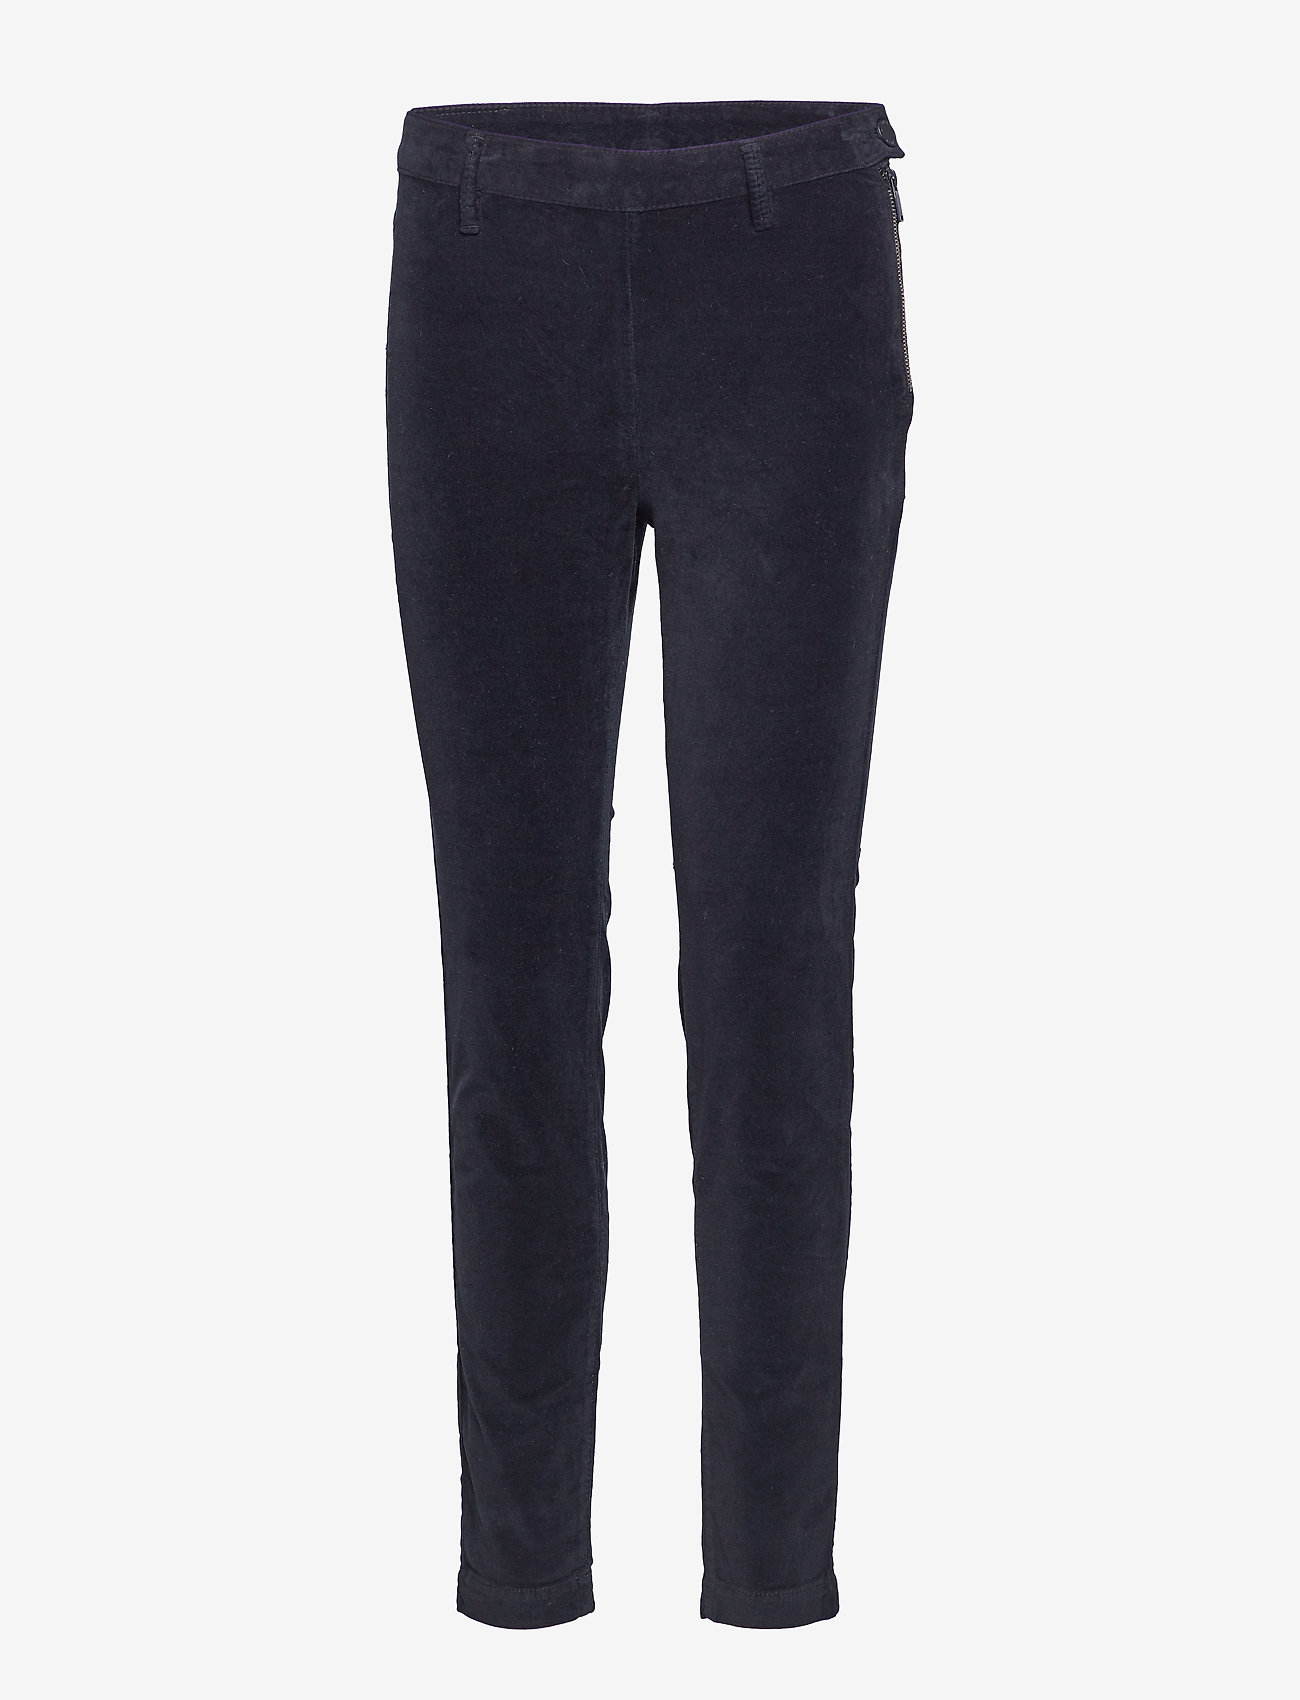 2NDDAY - 2ND Jeanett Velvet - straight leg trousers - black - 0